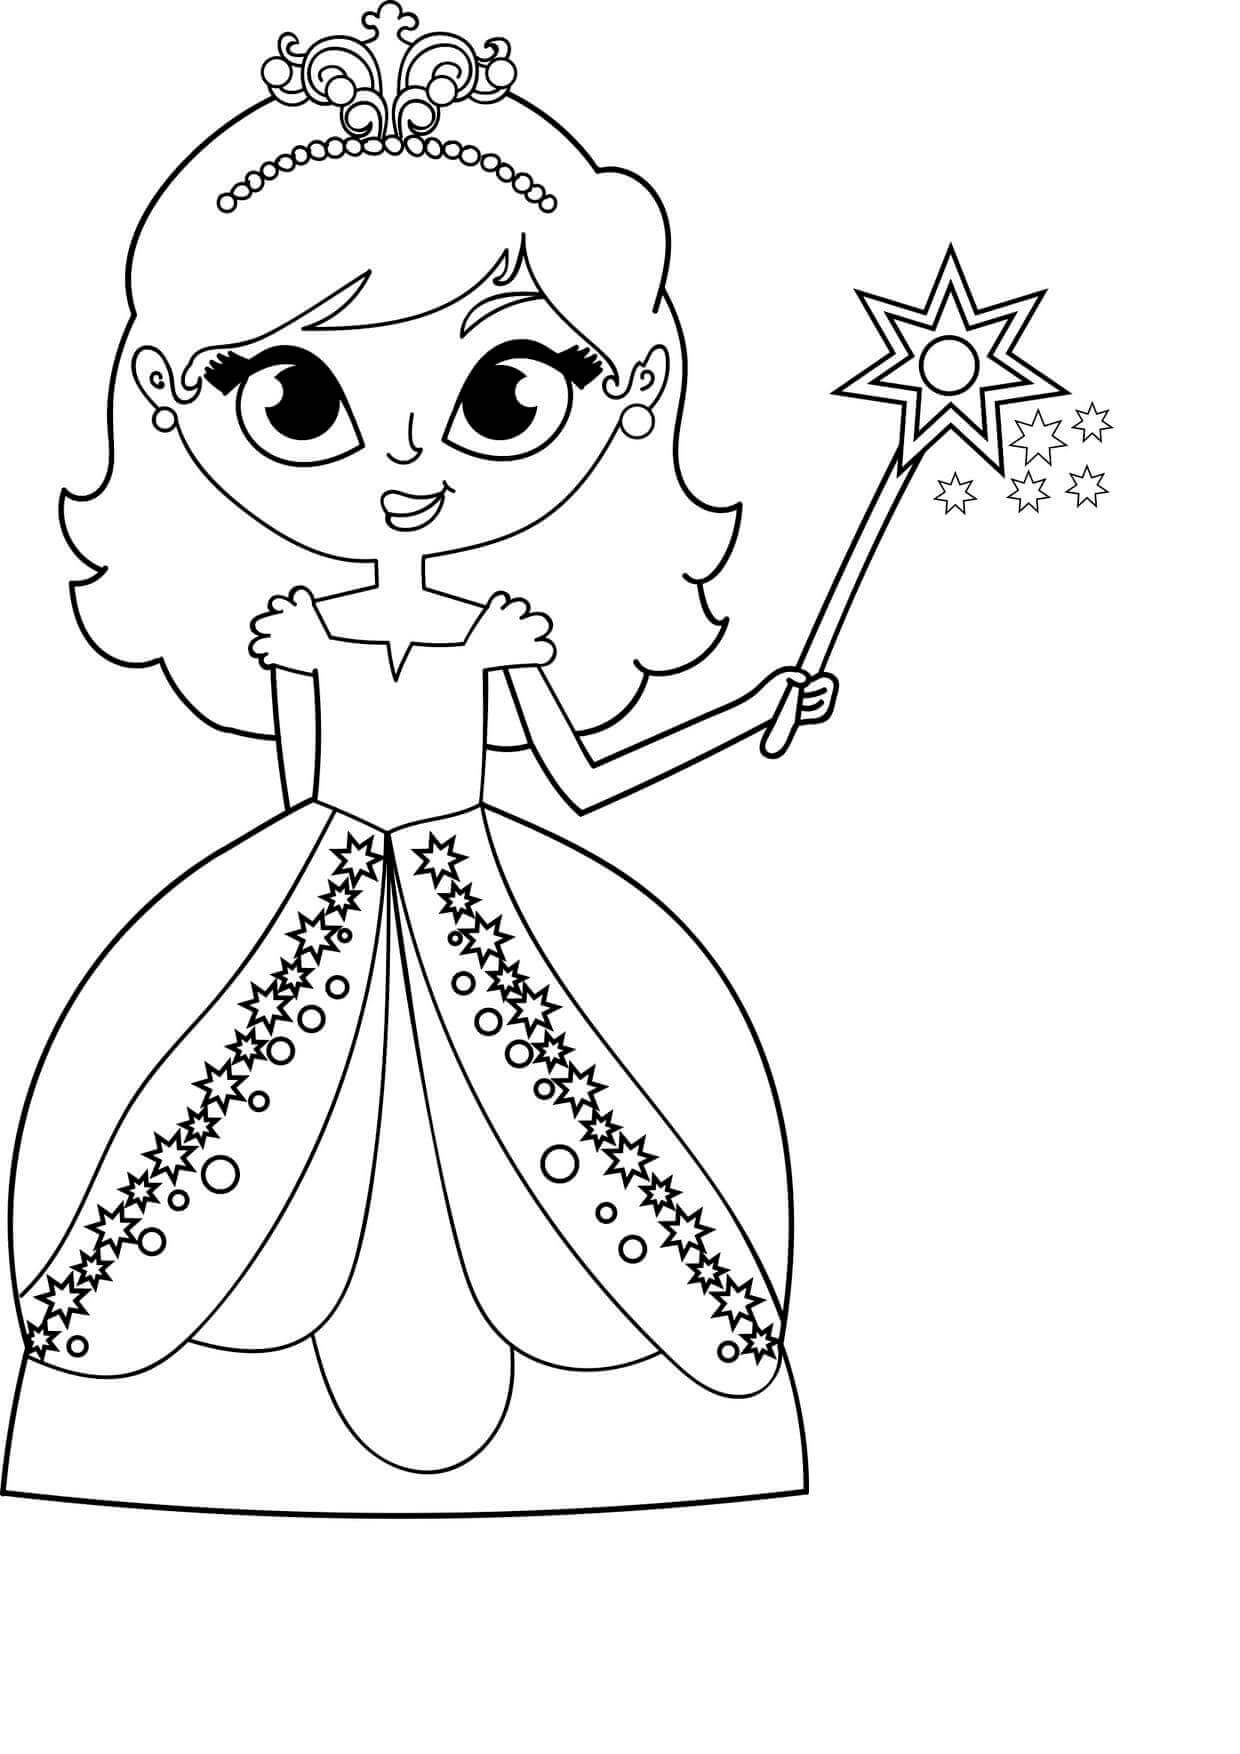 colouring in pictures for girls free printable coloring pages for girls pictures for in colouring girls